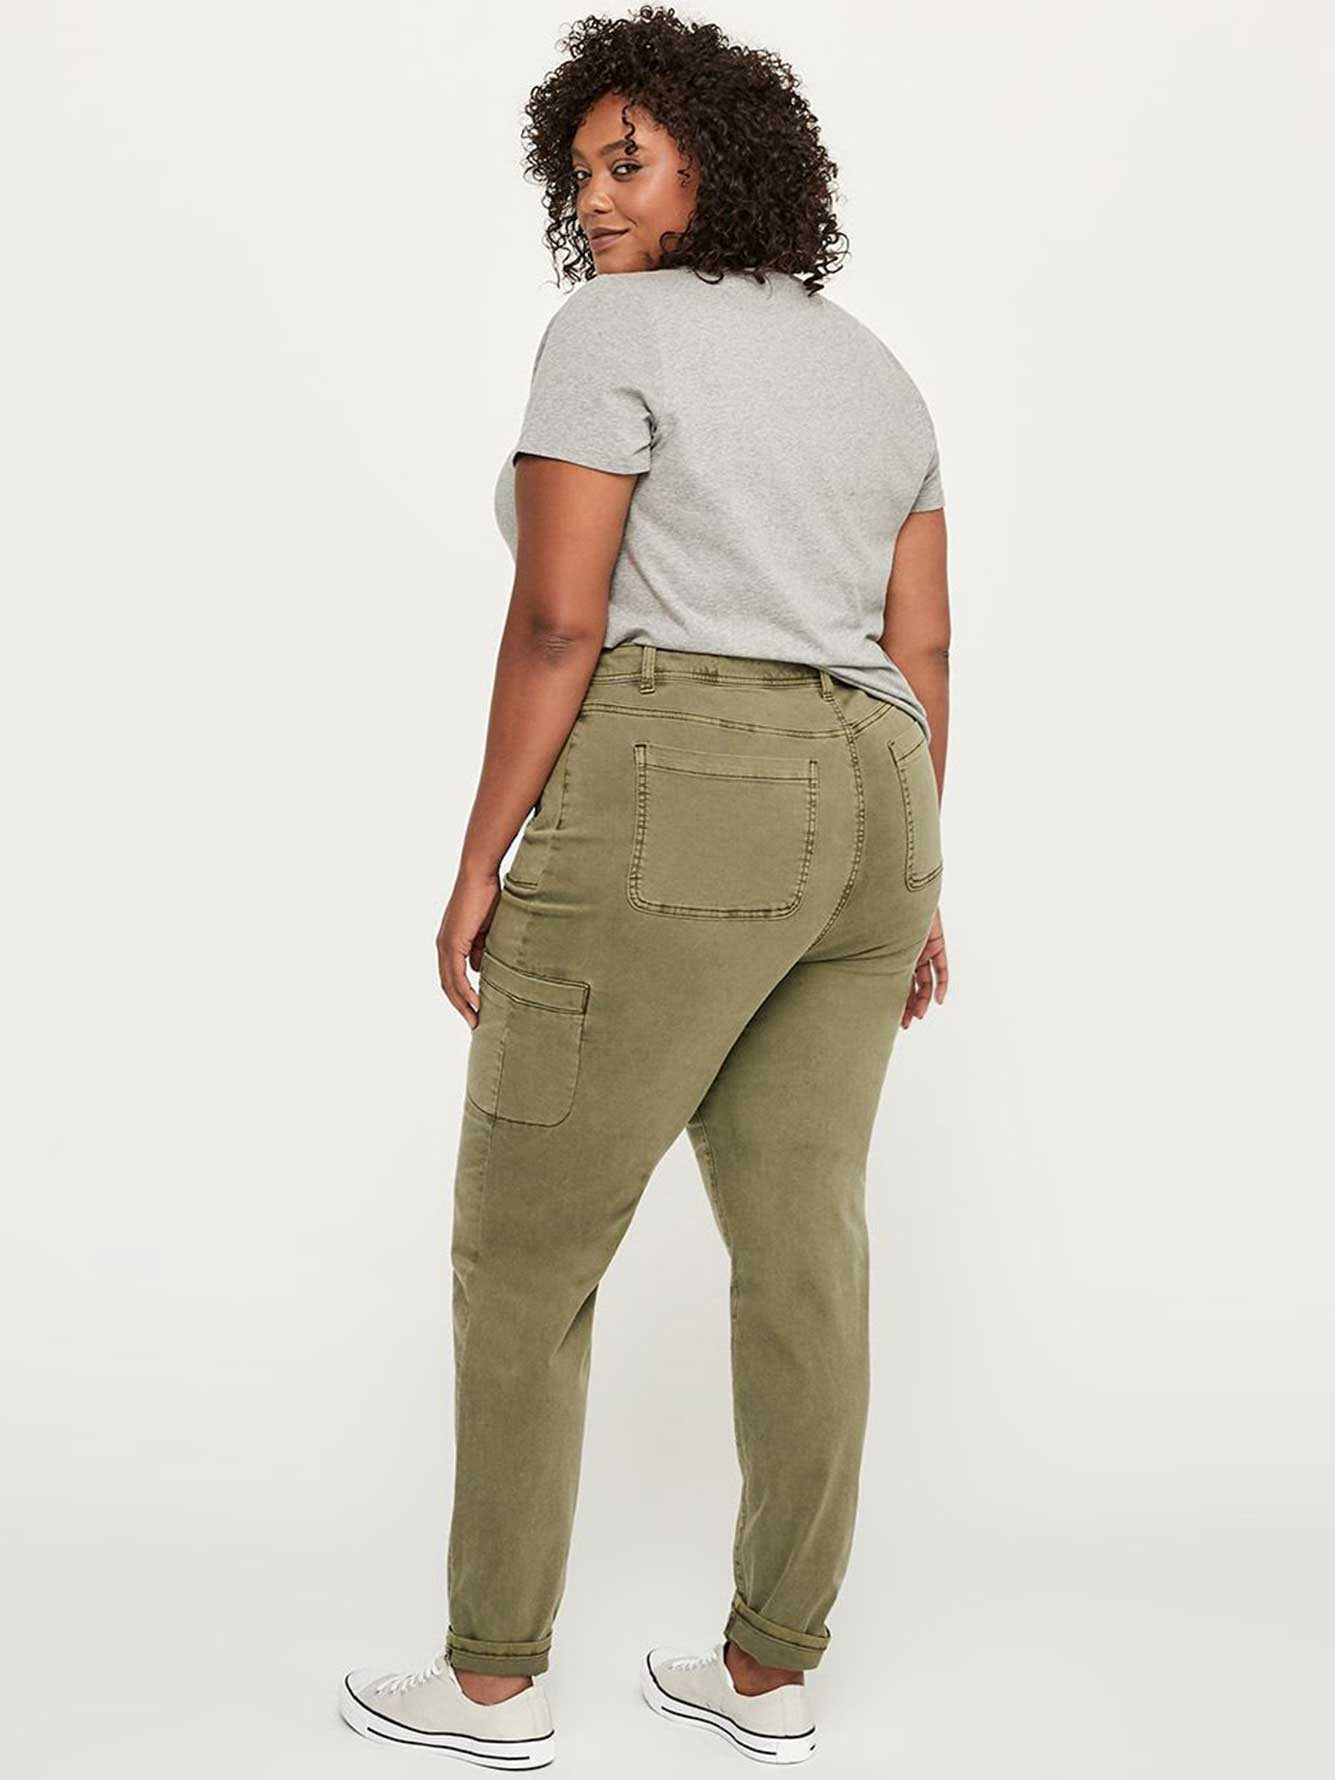 ONLY ONLY - Tall Slightly Curvy Fit Slim Leg Cargo Jean - d/C JEANS